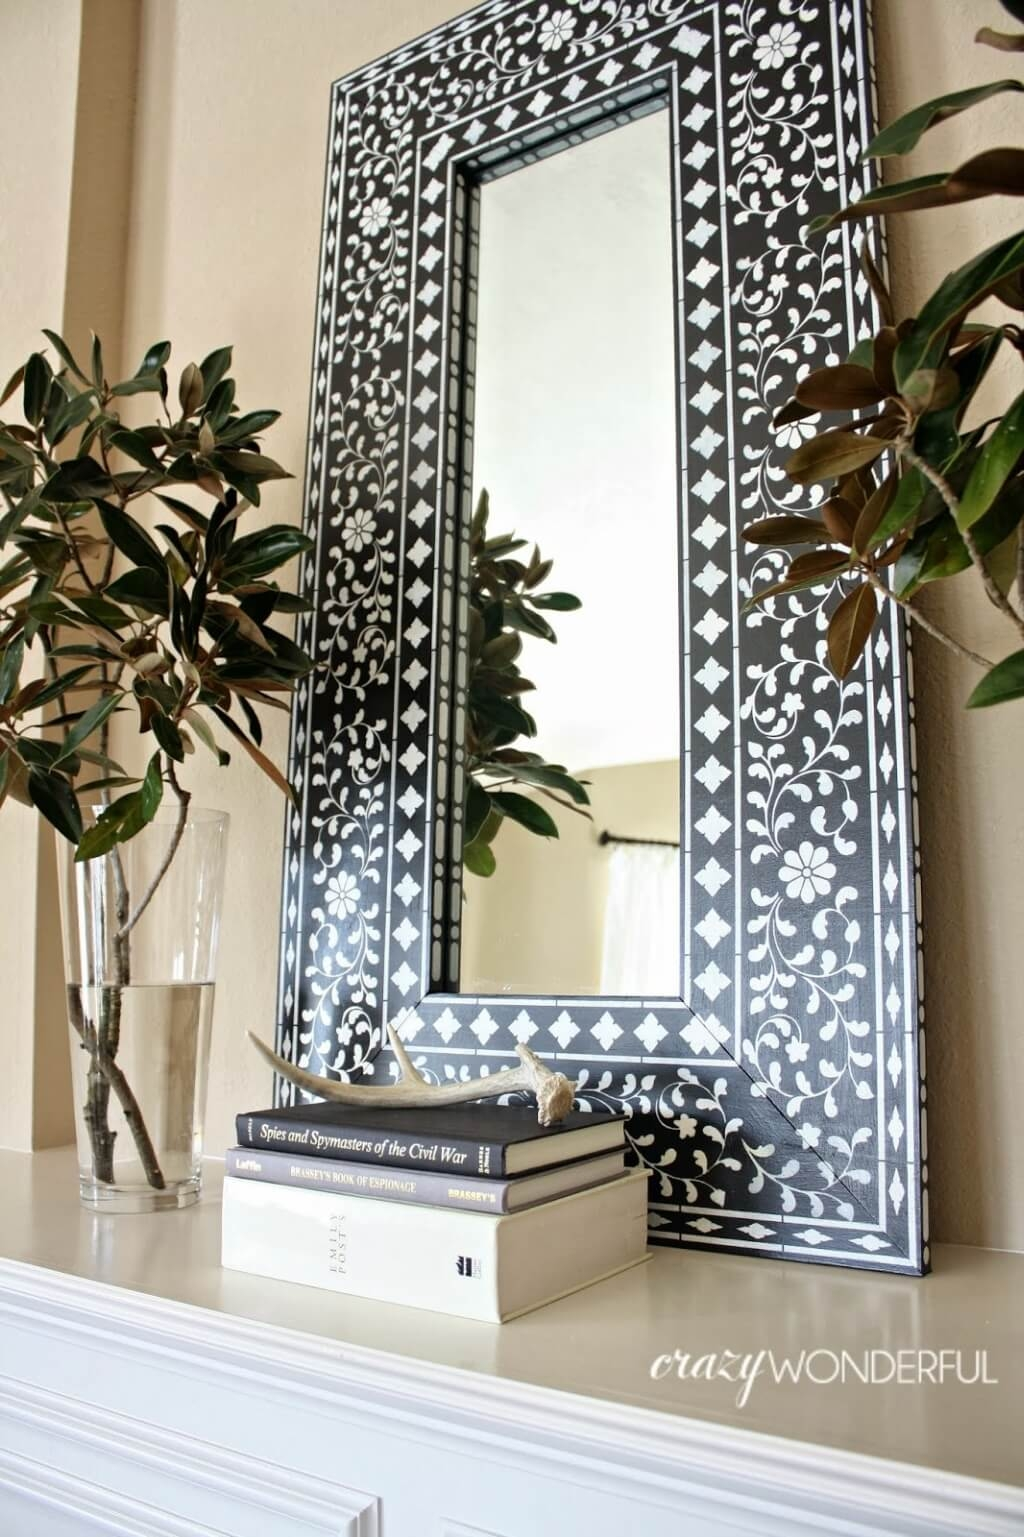 Home Decoration Vintage Wall Decor Mirrors With Decorative Wooden Throughout Big White Mirrors (Image 8 of 15)